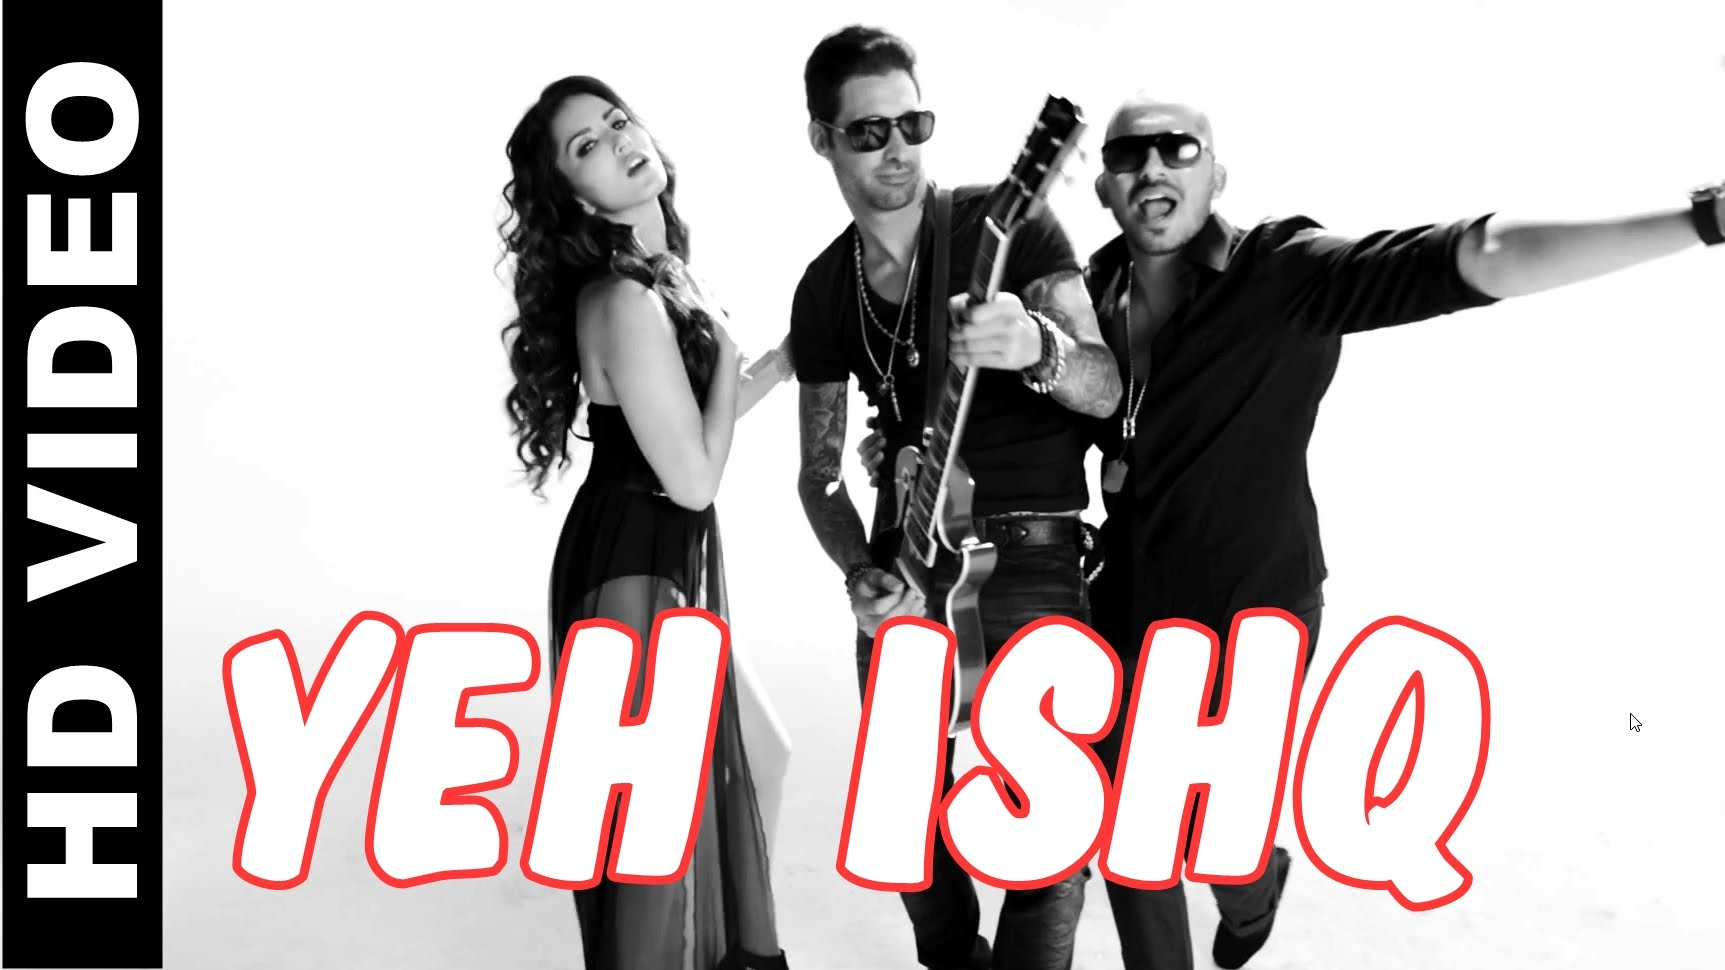 Yeh Ishq Video Song – Kuch Kuch Locha Hai   Official Video Song